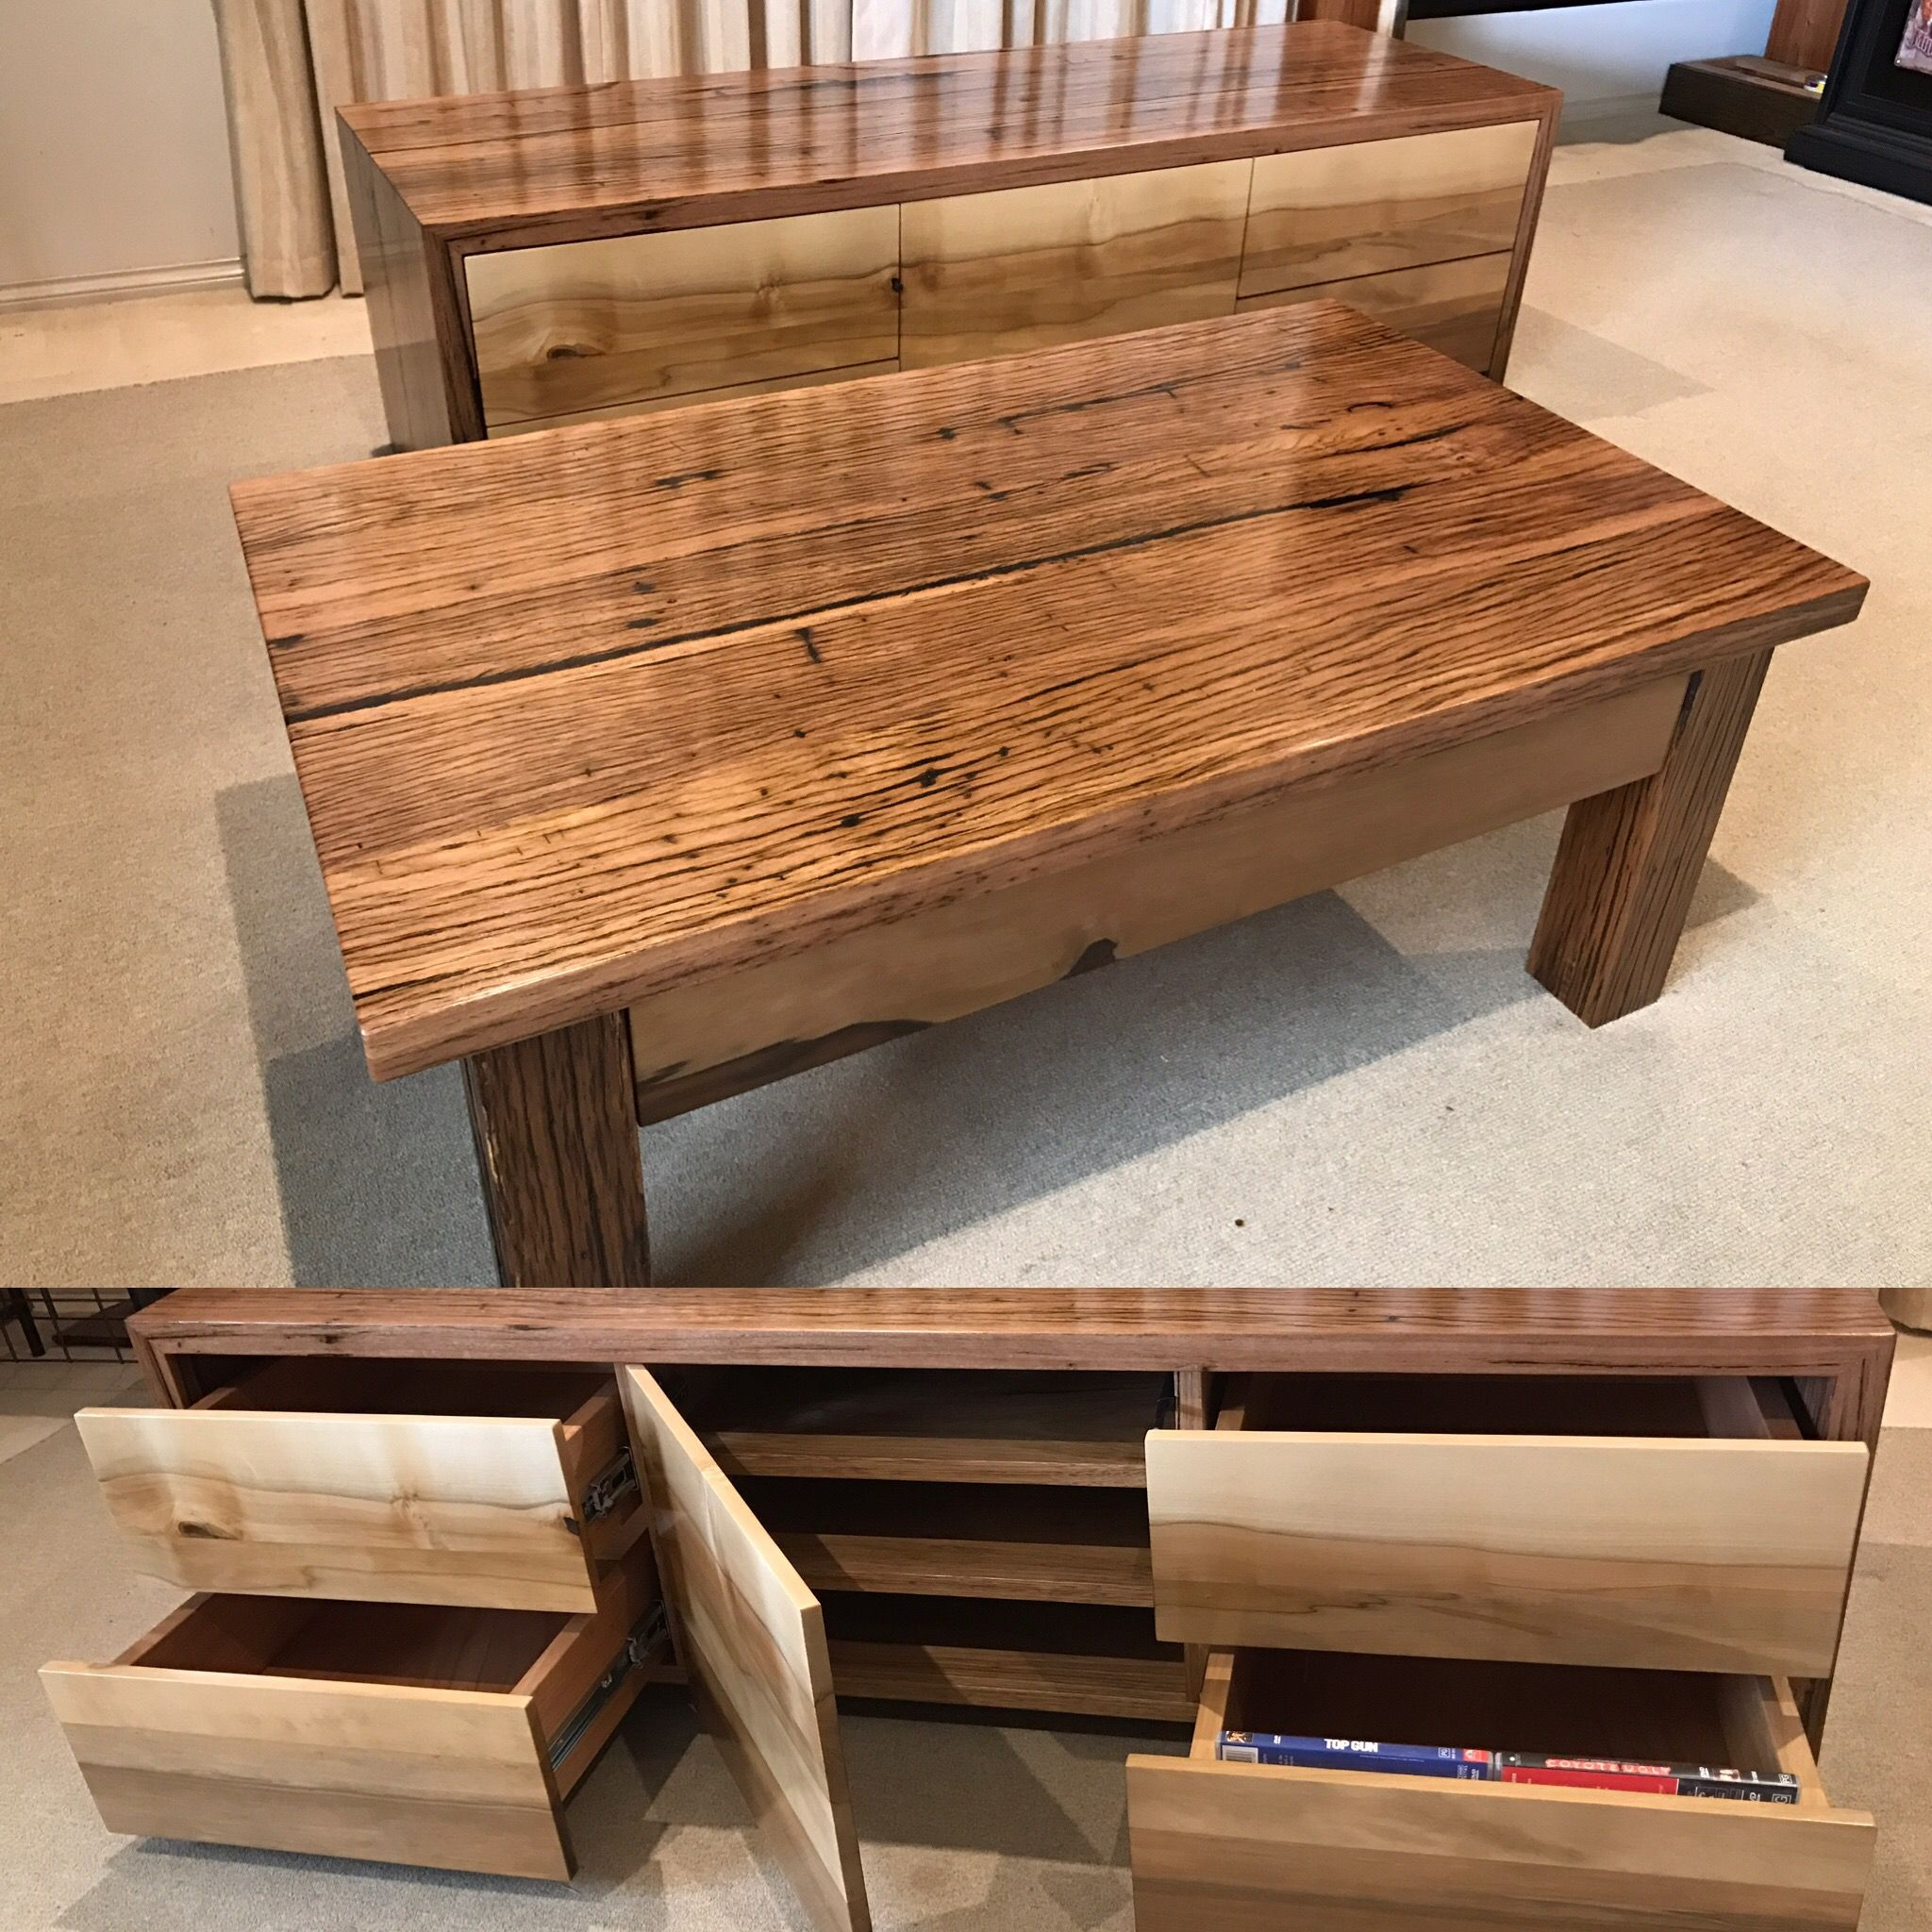 recycled wooden furniture. Recycled Hardwood Timber TV Unit \u0026 Matching Coffee Table With Black Heart Sassafras Fronts Rails Wooden Furniture